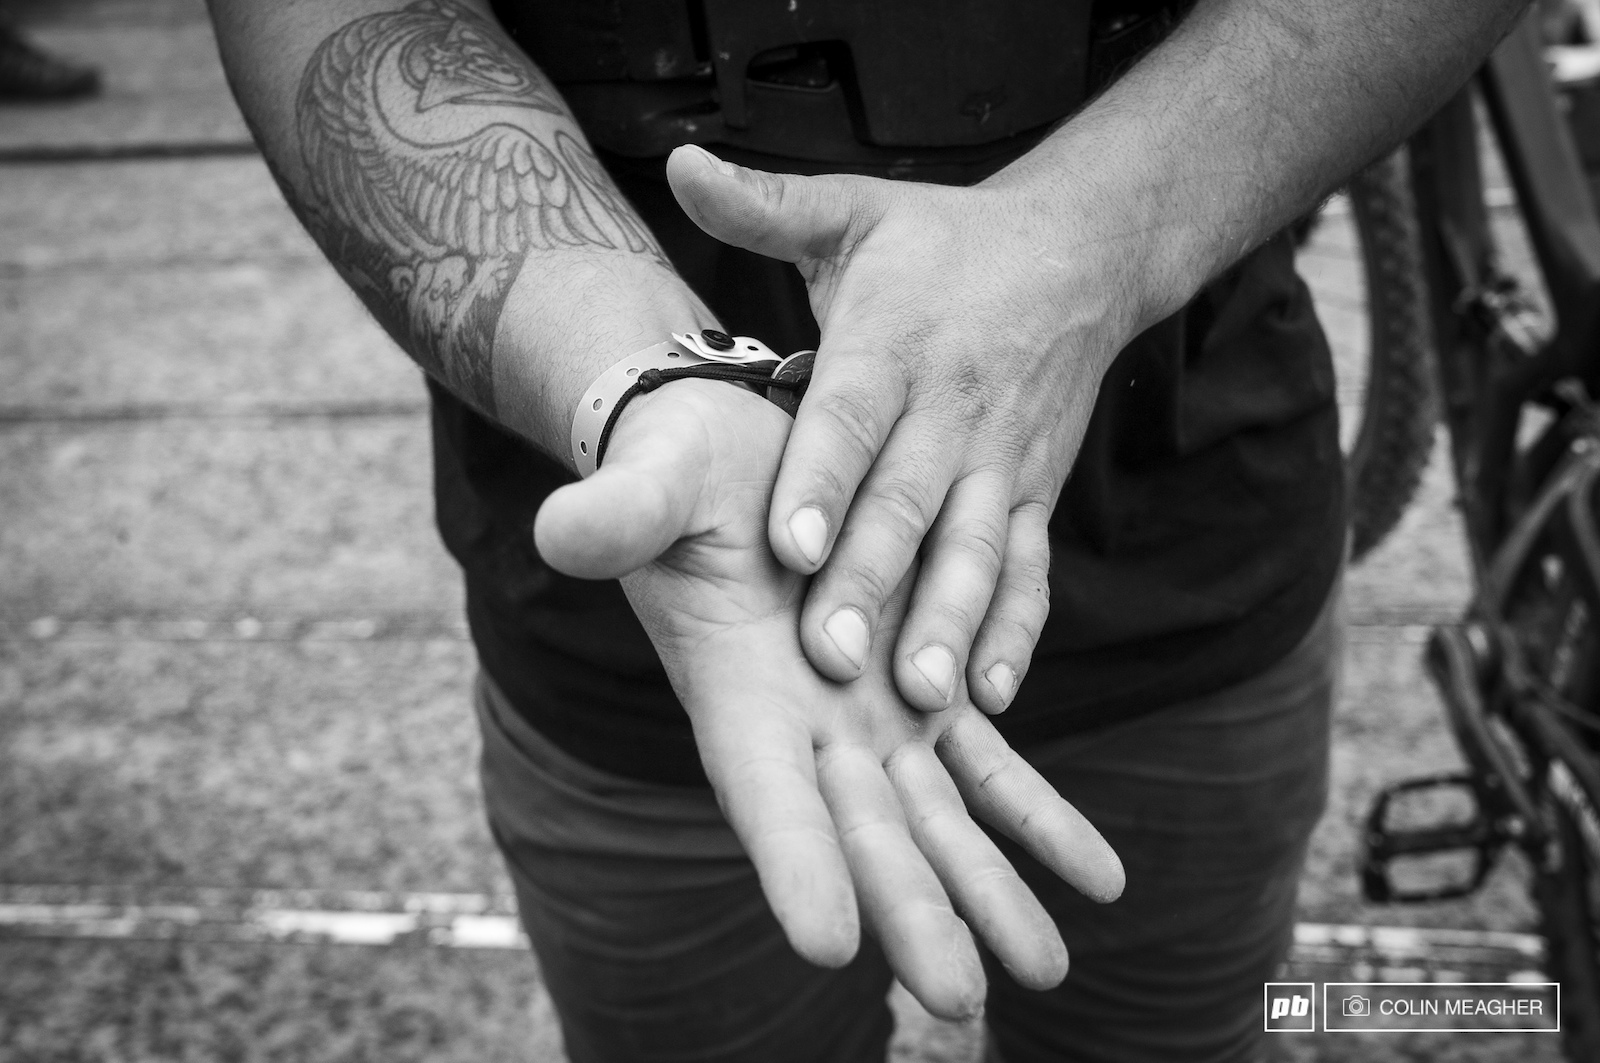 Yannick Granary chalking his hands with dust to help keep his hands from slipping on his grips.